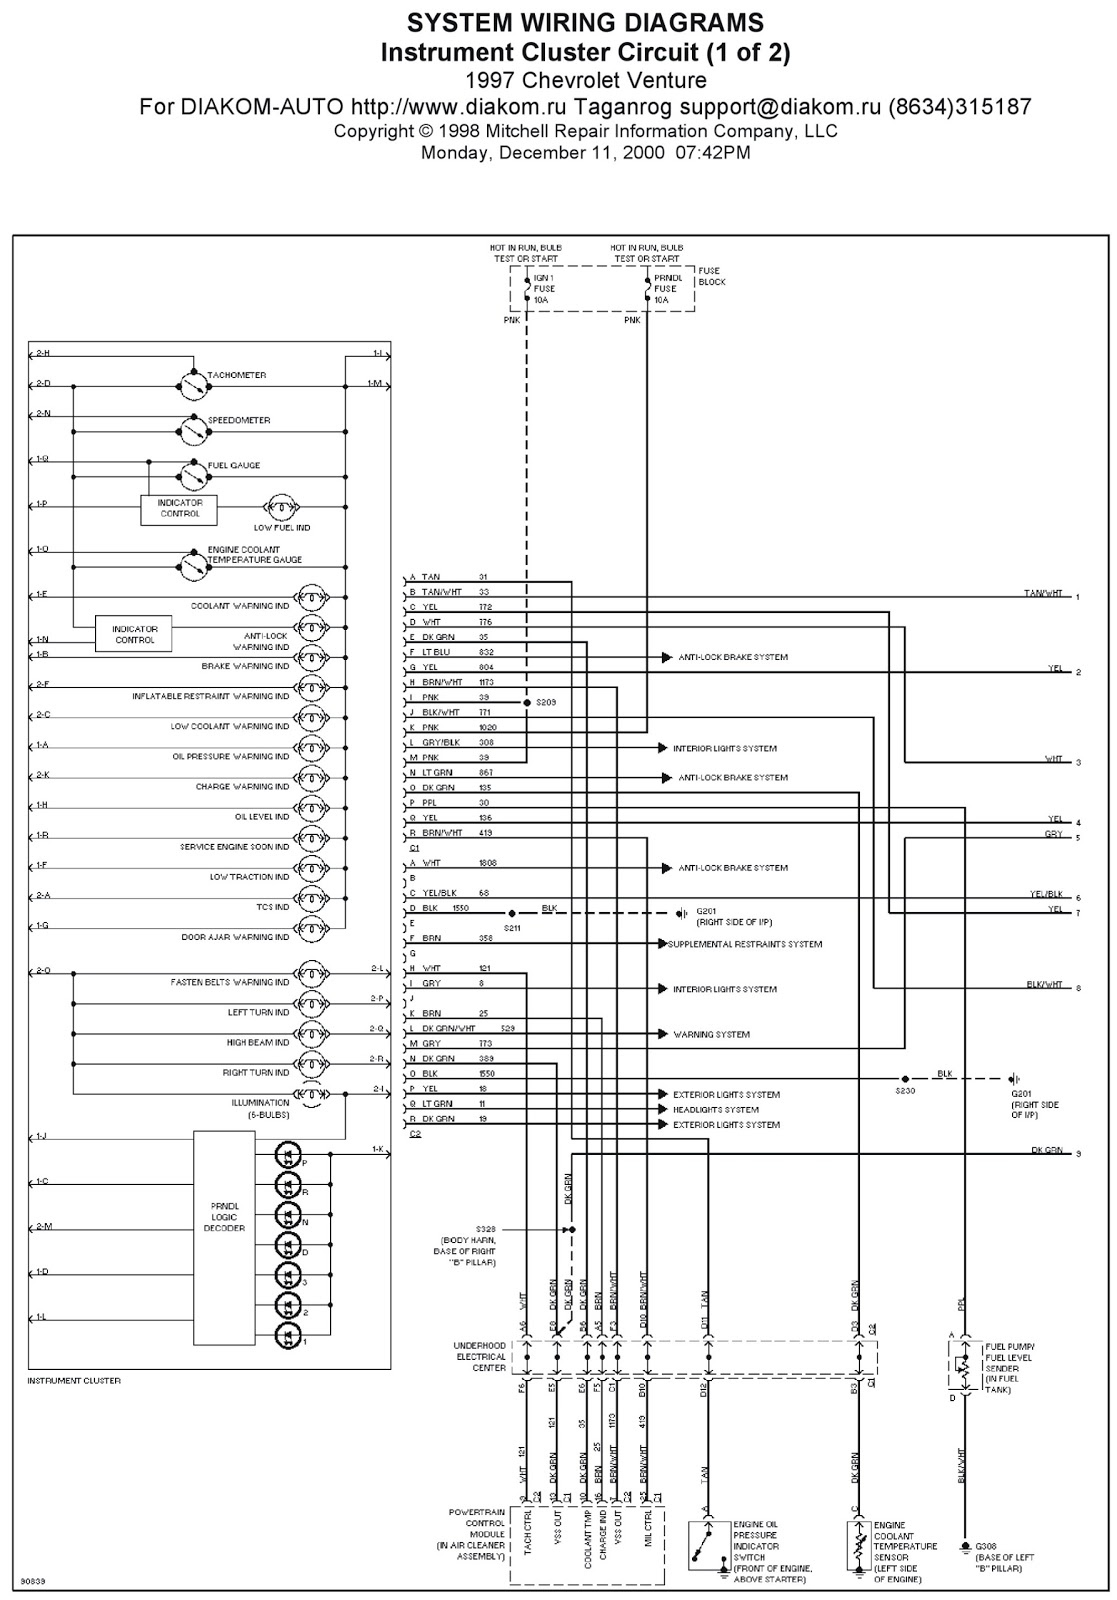 1997 chevrolet venture instrument cluster circuit system wiring diagram part 1in the part two you will see the parts as follow electronic brake control  [ 1117 x 1600 Pixel ]